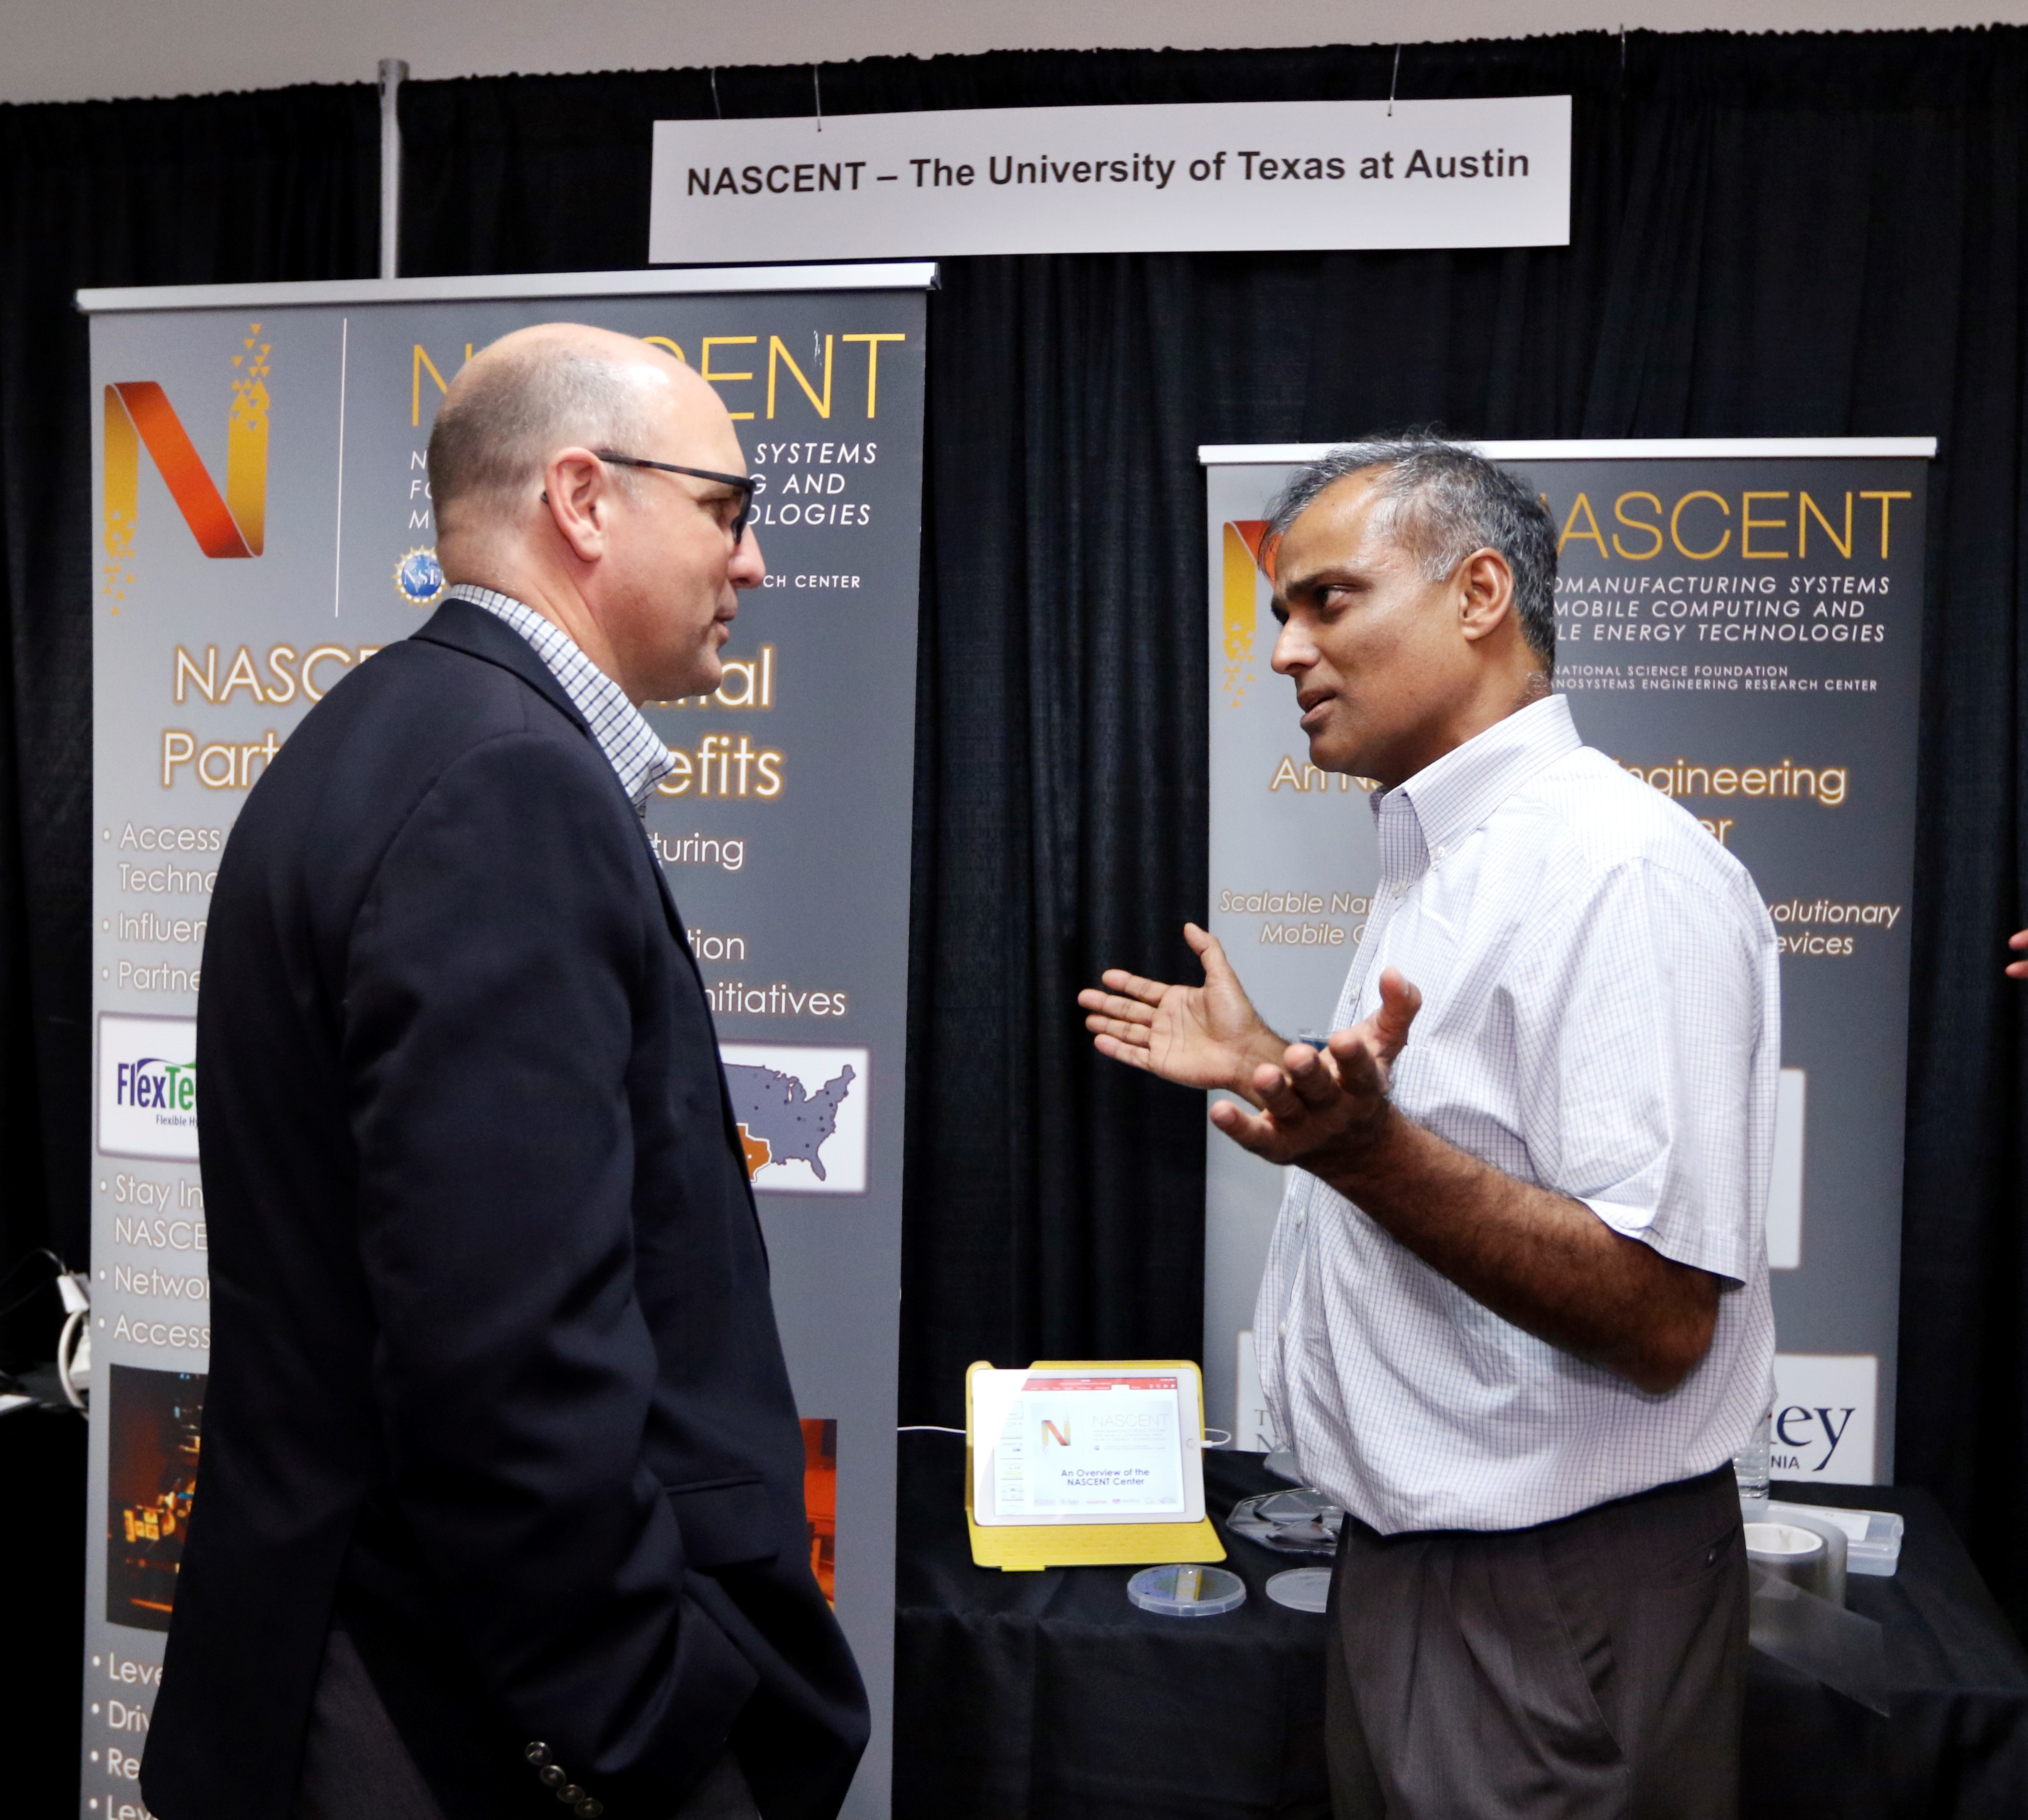 Dr. Sreenivasan in front of the NASCENT booth at NEXTFLEX Innovation Day 2018